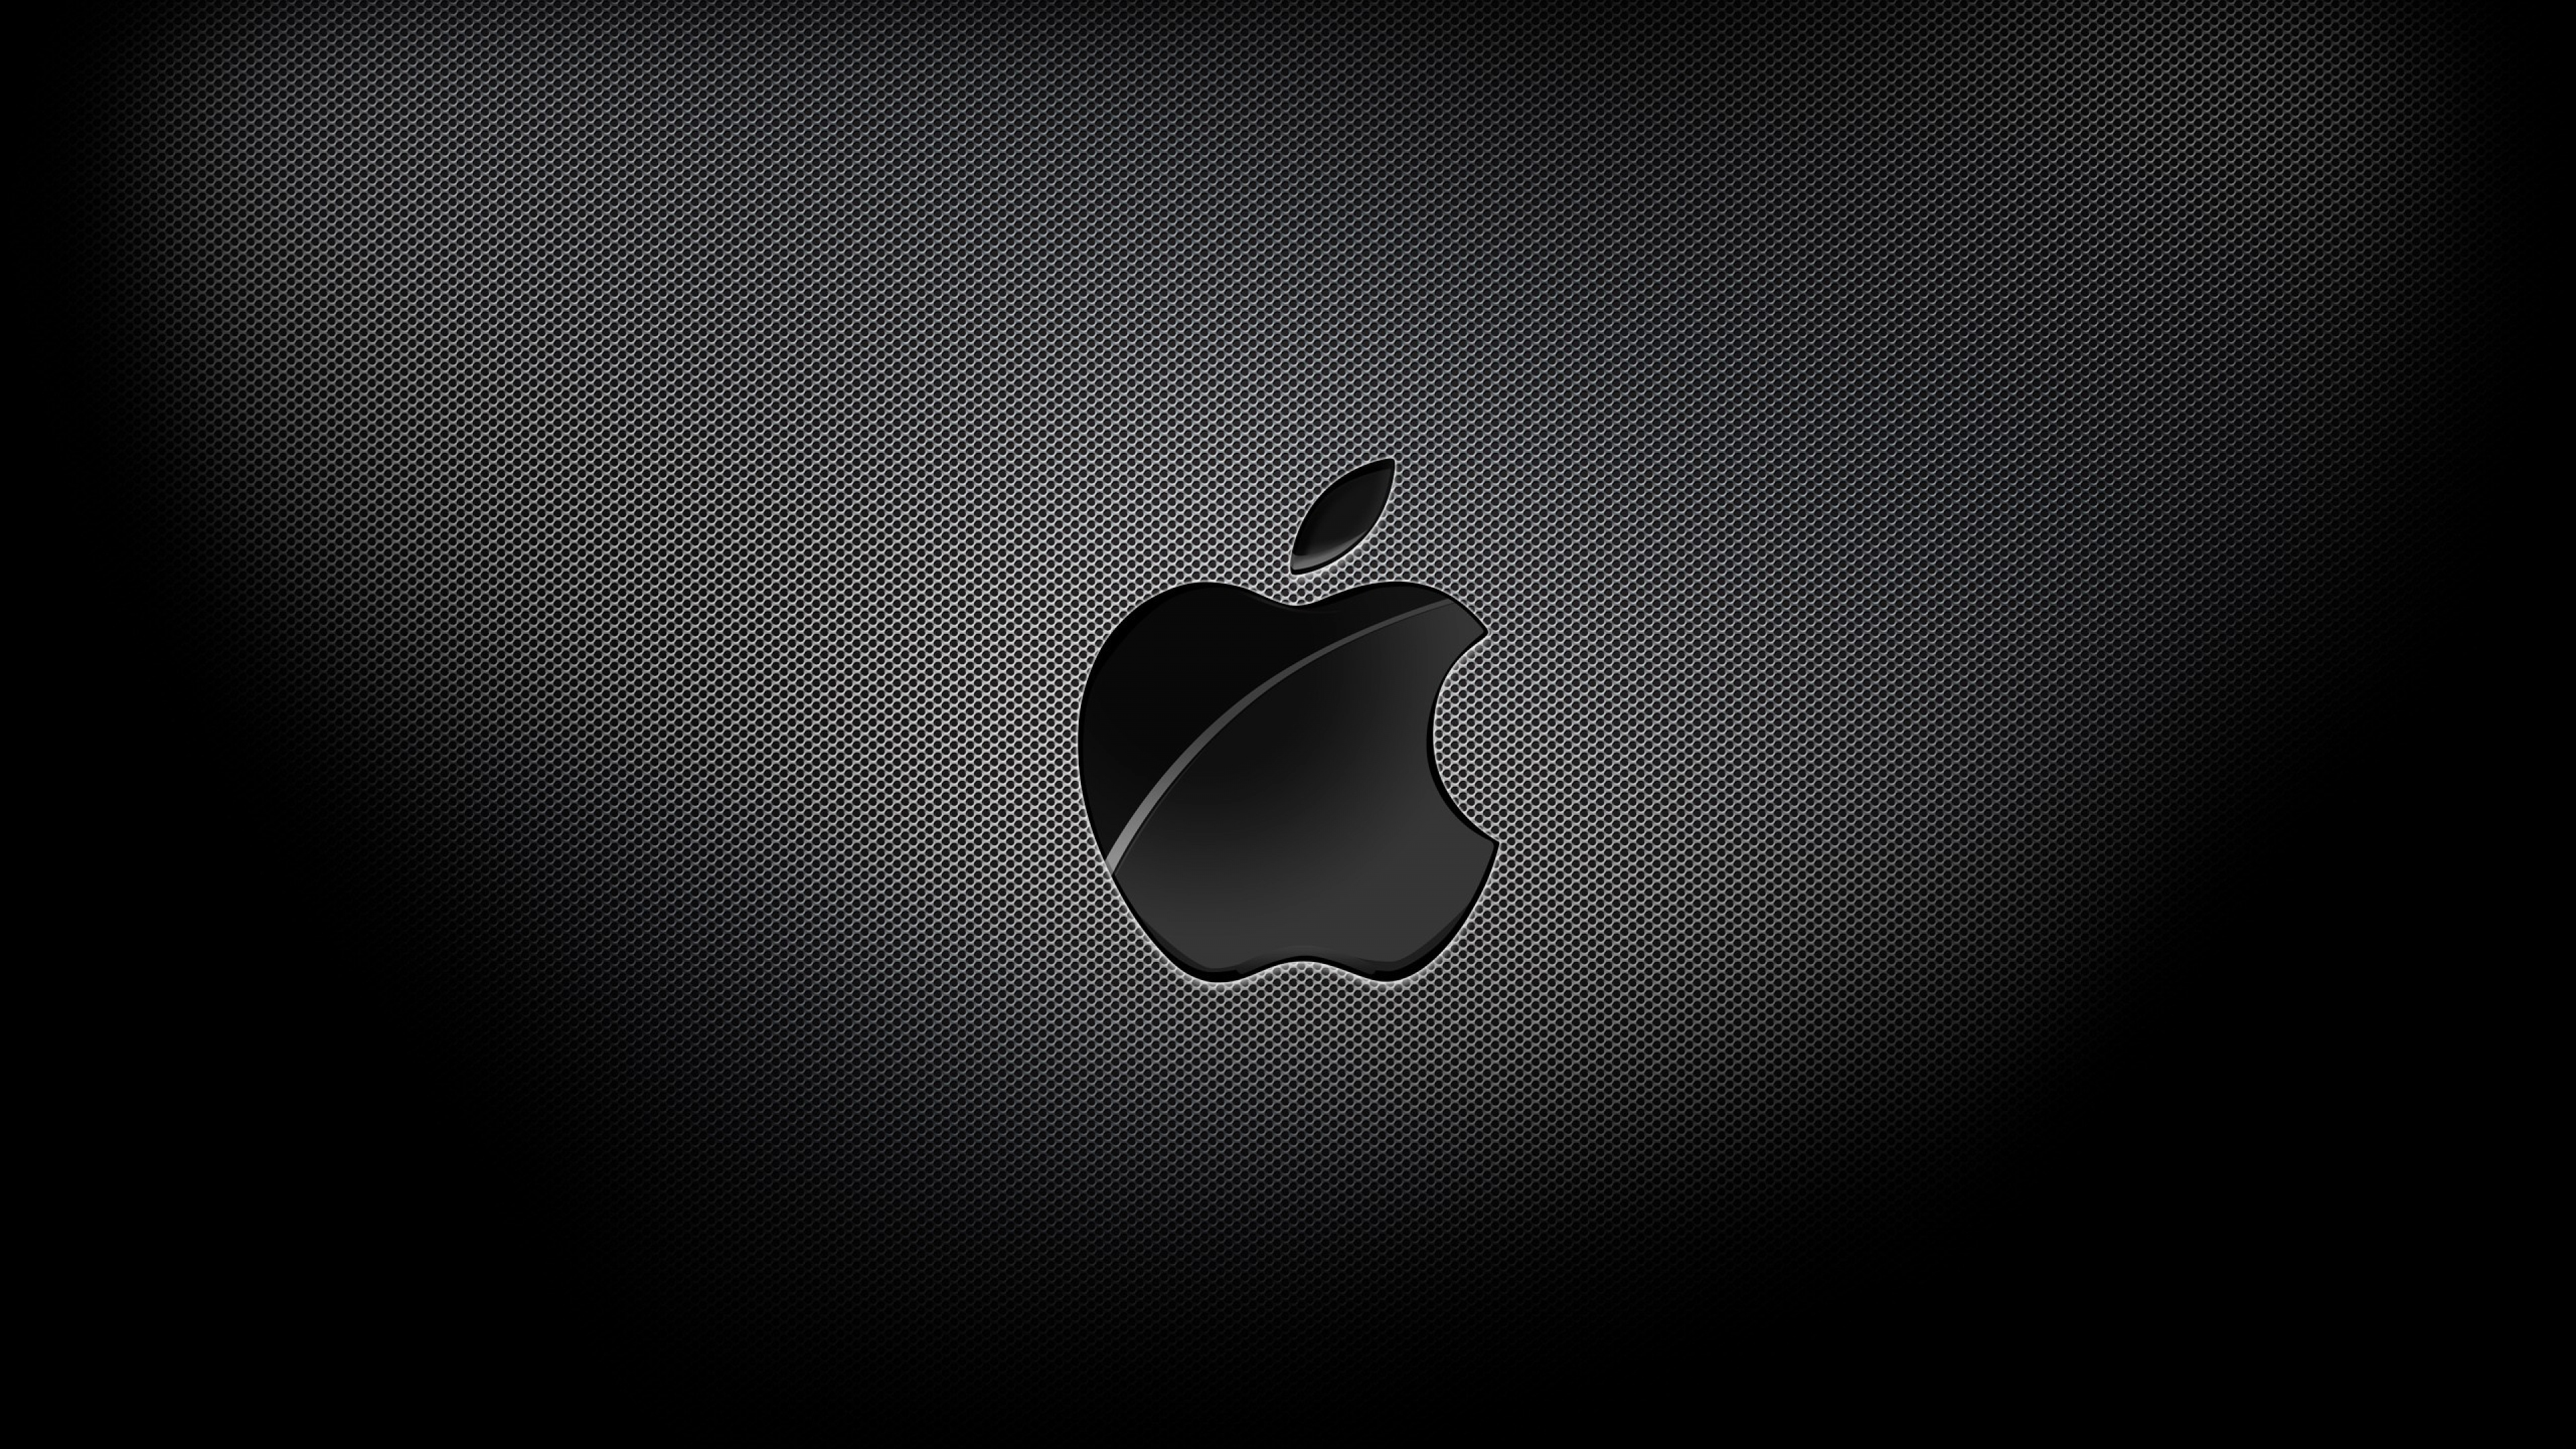 apple mac brand logo dark light shadow 44045 3840x2160jpg3Forig3D3 3840x2160